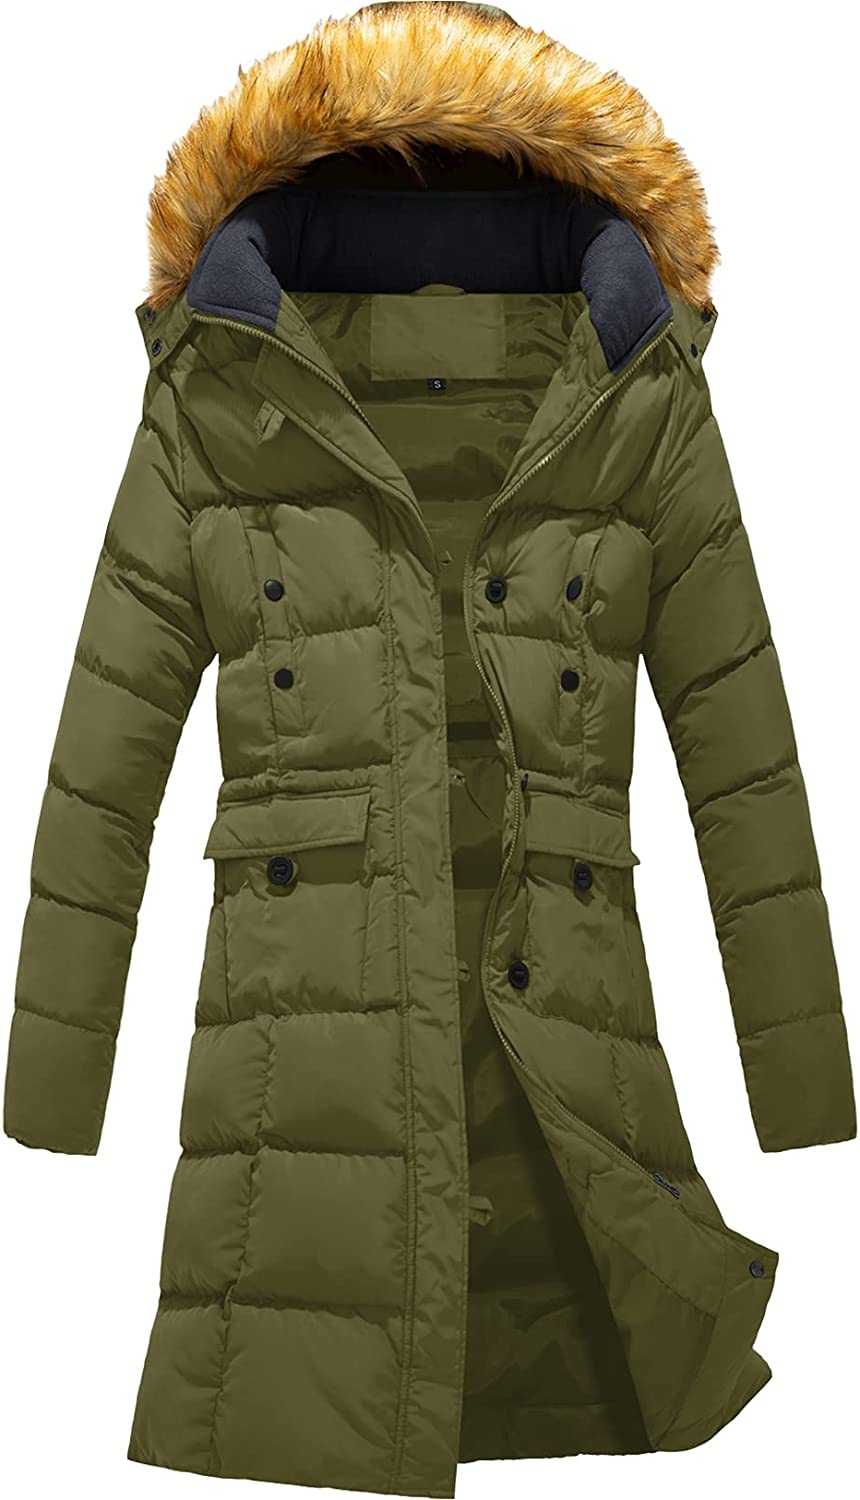 Szory Women's Winter Beauty products Down Virginia Beach Mall Puffer Mid Rem with Pocket Coat Length